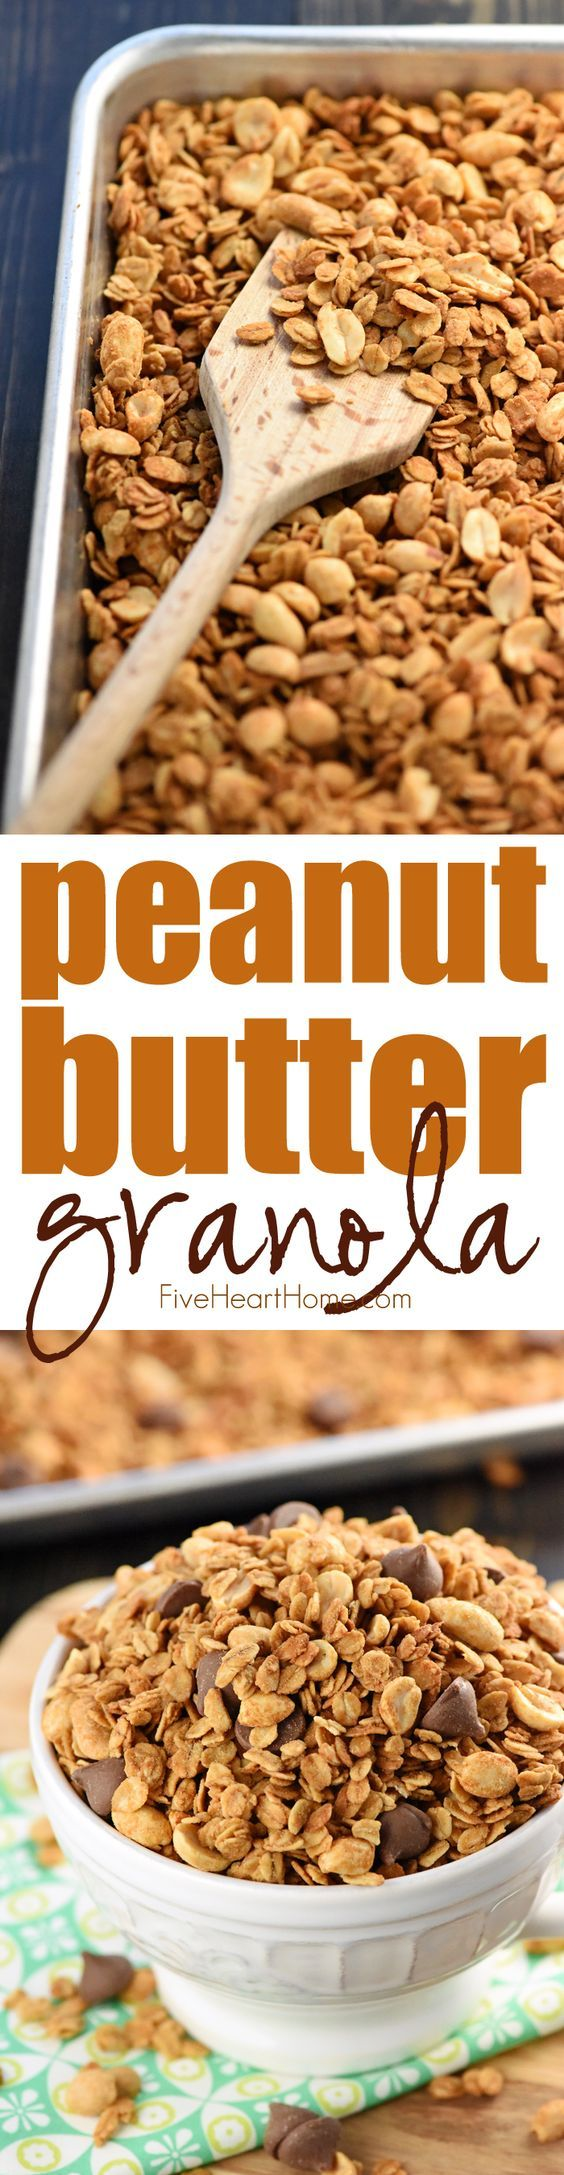 5-Ingredient Peanut Butter Granola ~ a quick and easy recipe that makes a wholesome, yummy breakfast, snack, or even dessert (dressed up with a handful of chocolate chips)!   FiveHeartHome.com: